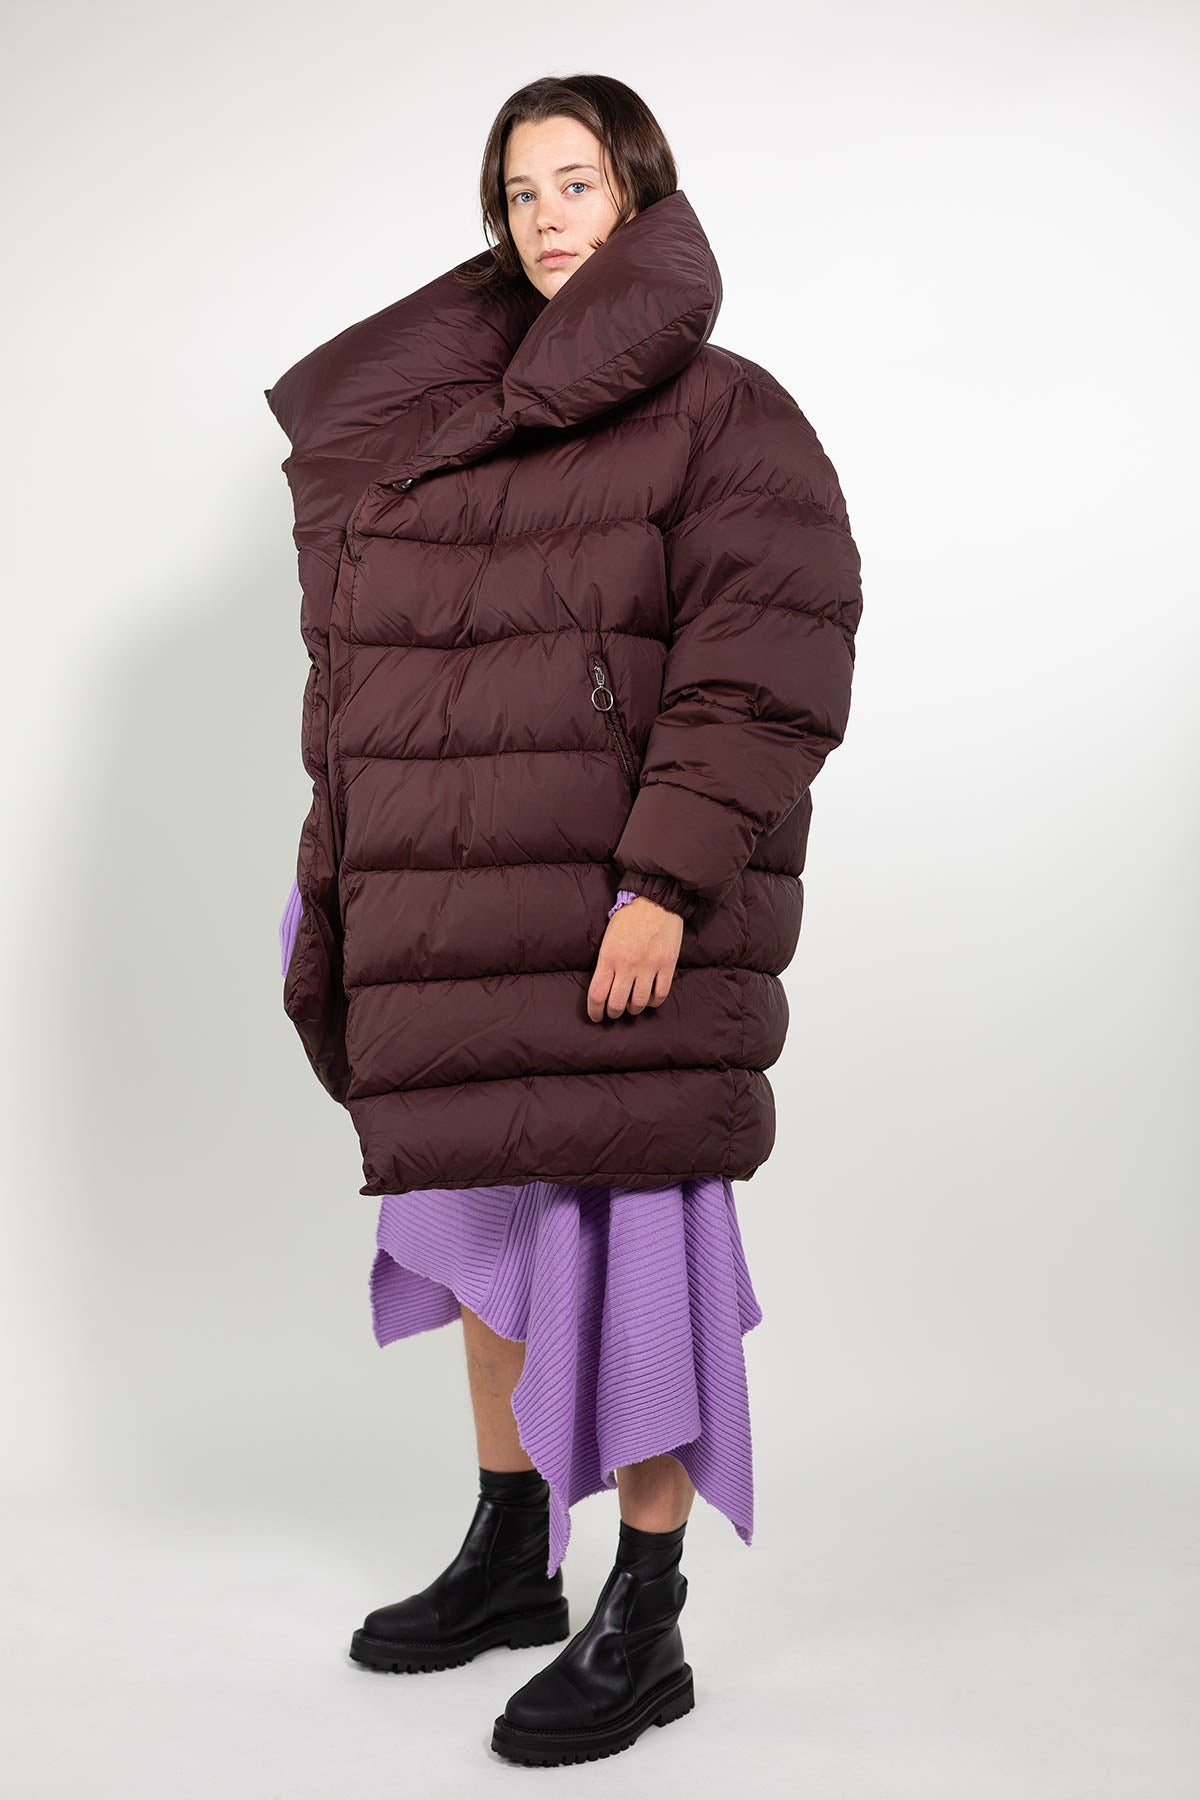 LONG M'A BROWN PUFFA JACKET